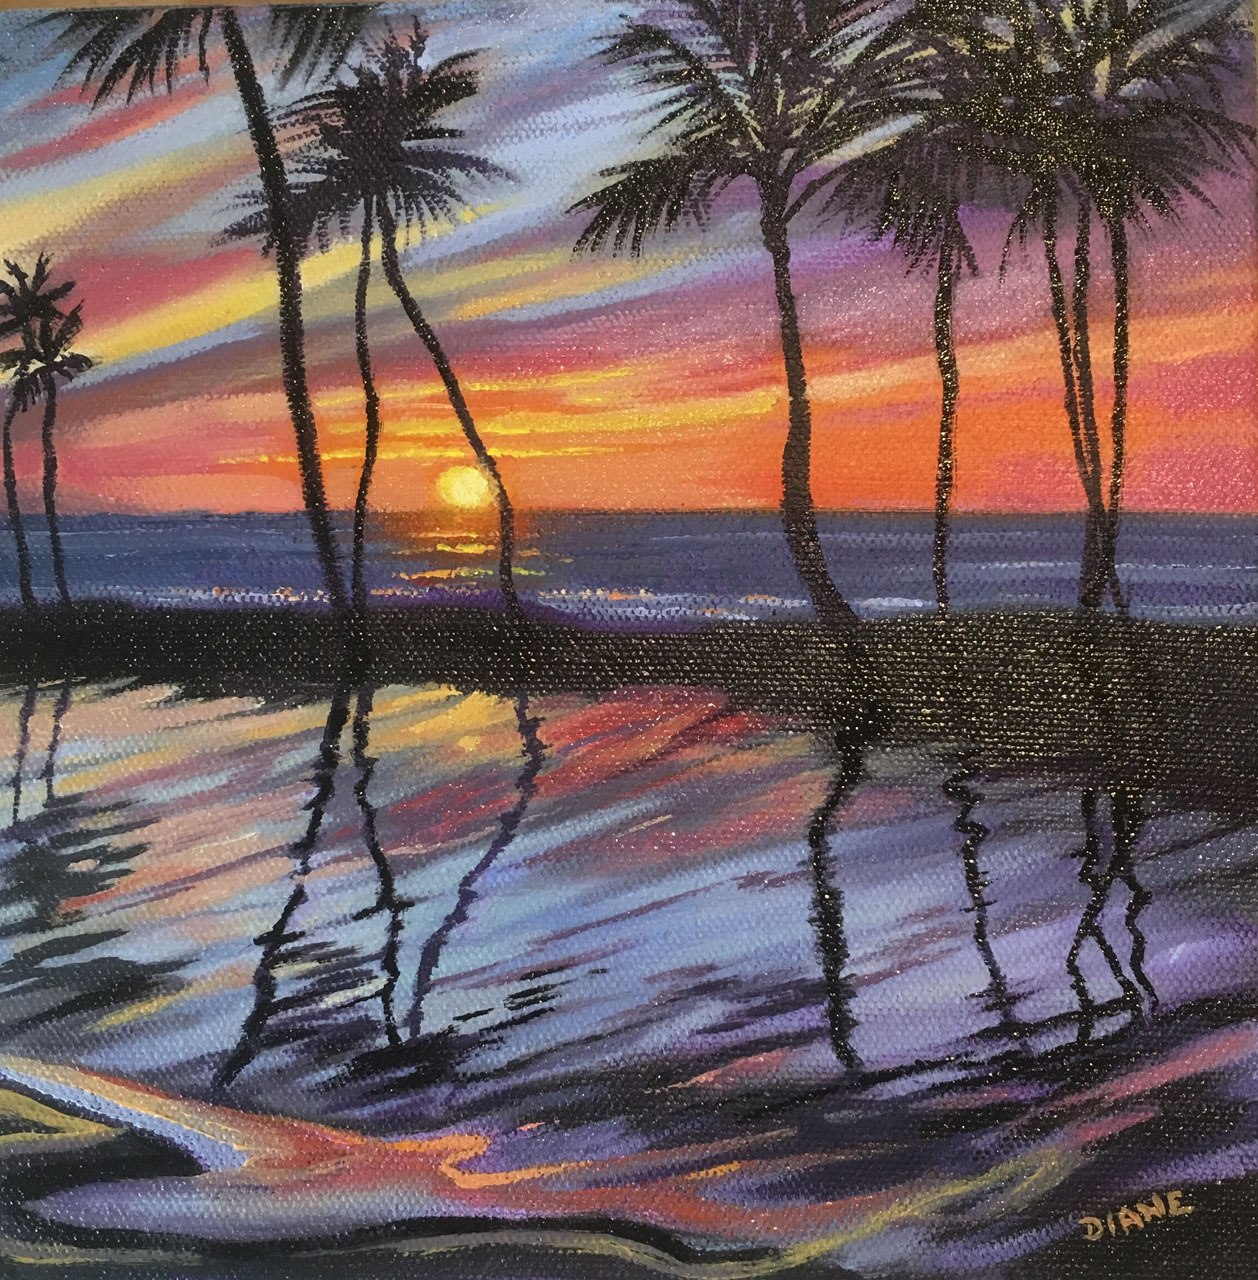 Wailea Sunset Shimmer 8 x 8 Oil on canvas Diane Snoey Appler